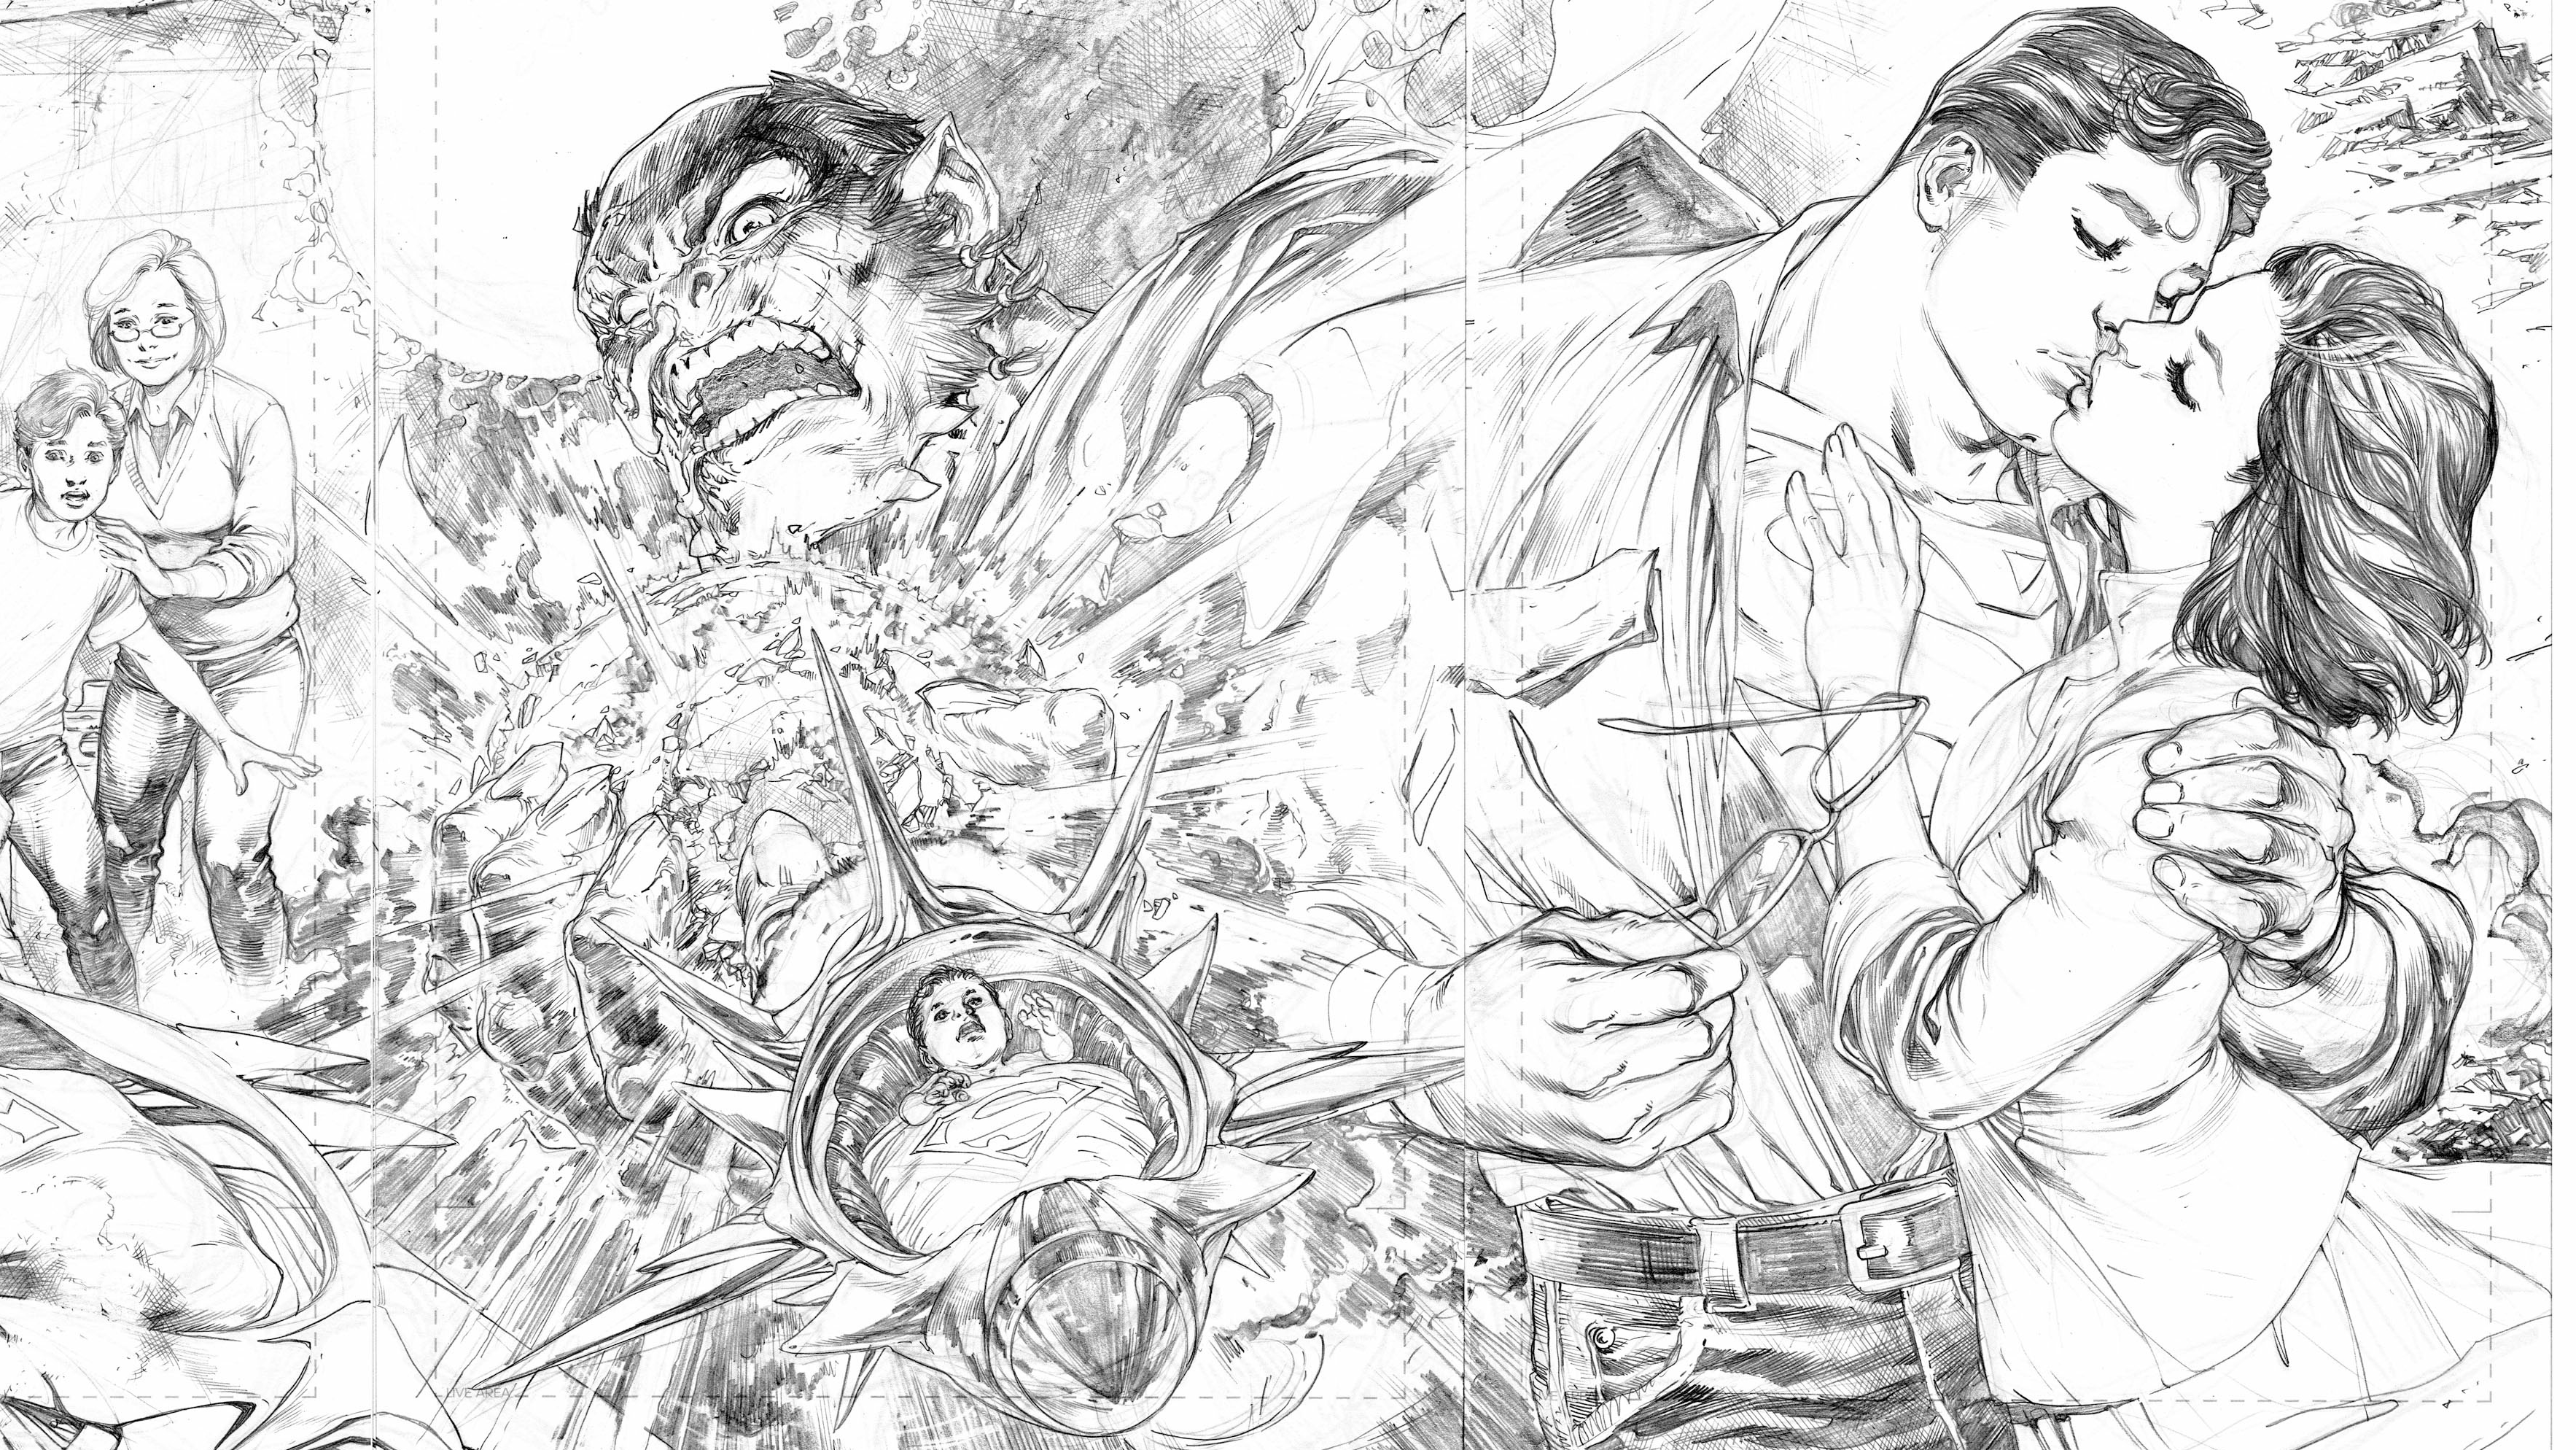 At SXSW, Brian Michael Bendis Talks The Inspirational Potential Of Superman's Legacy Of Hope